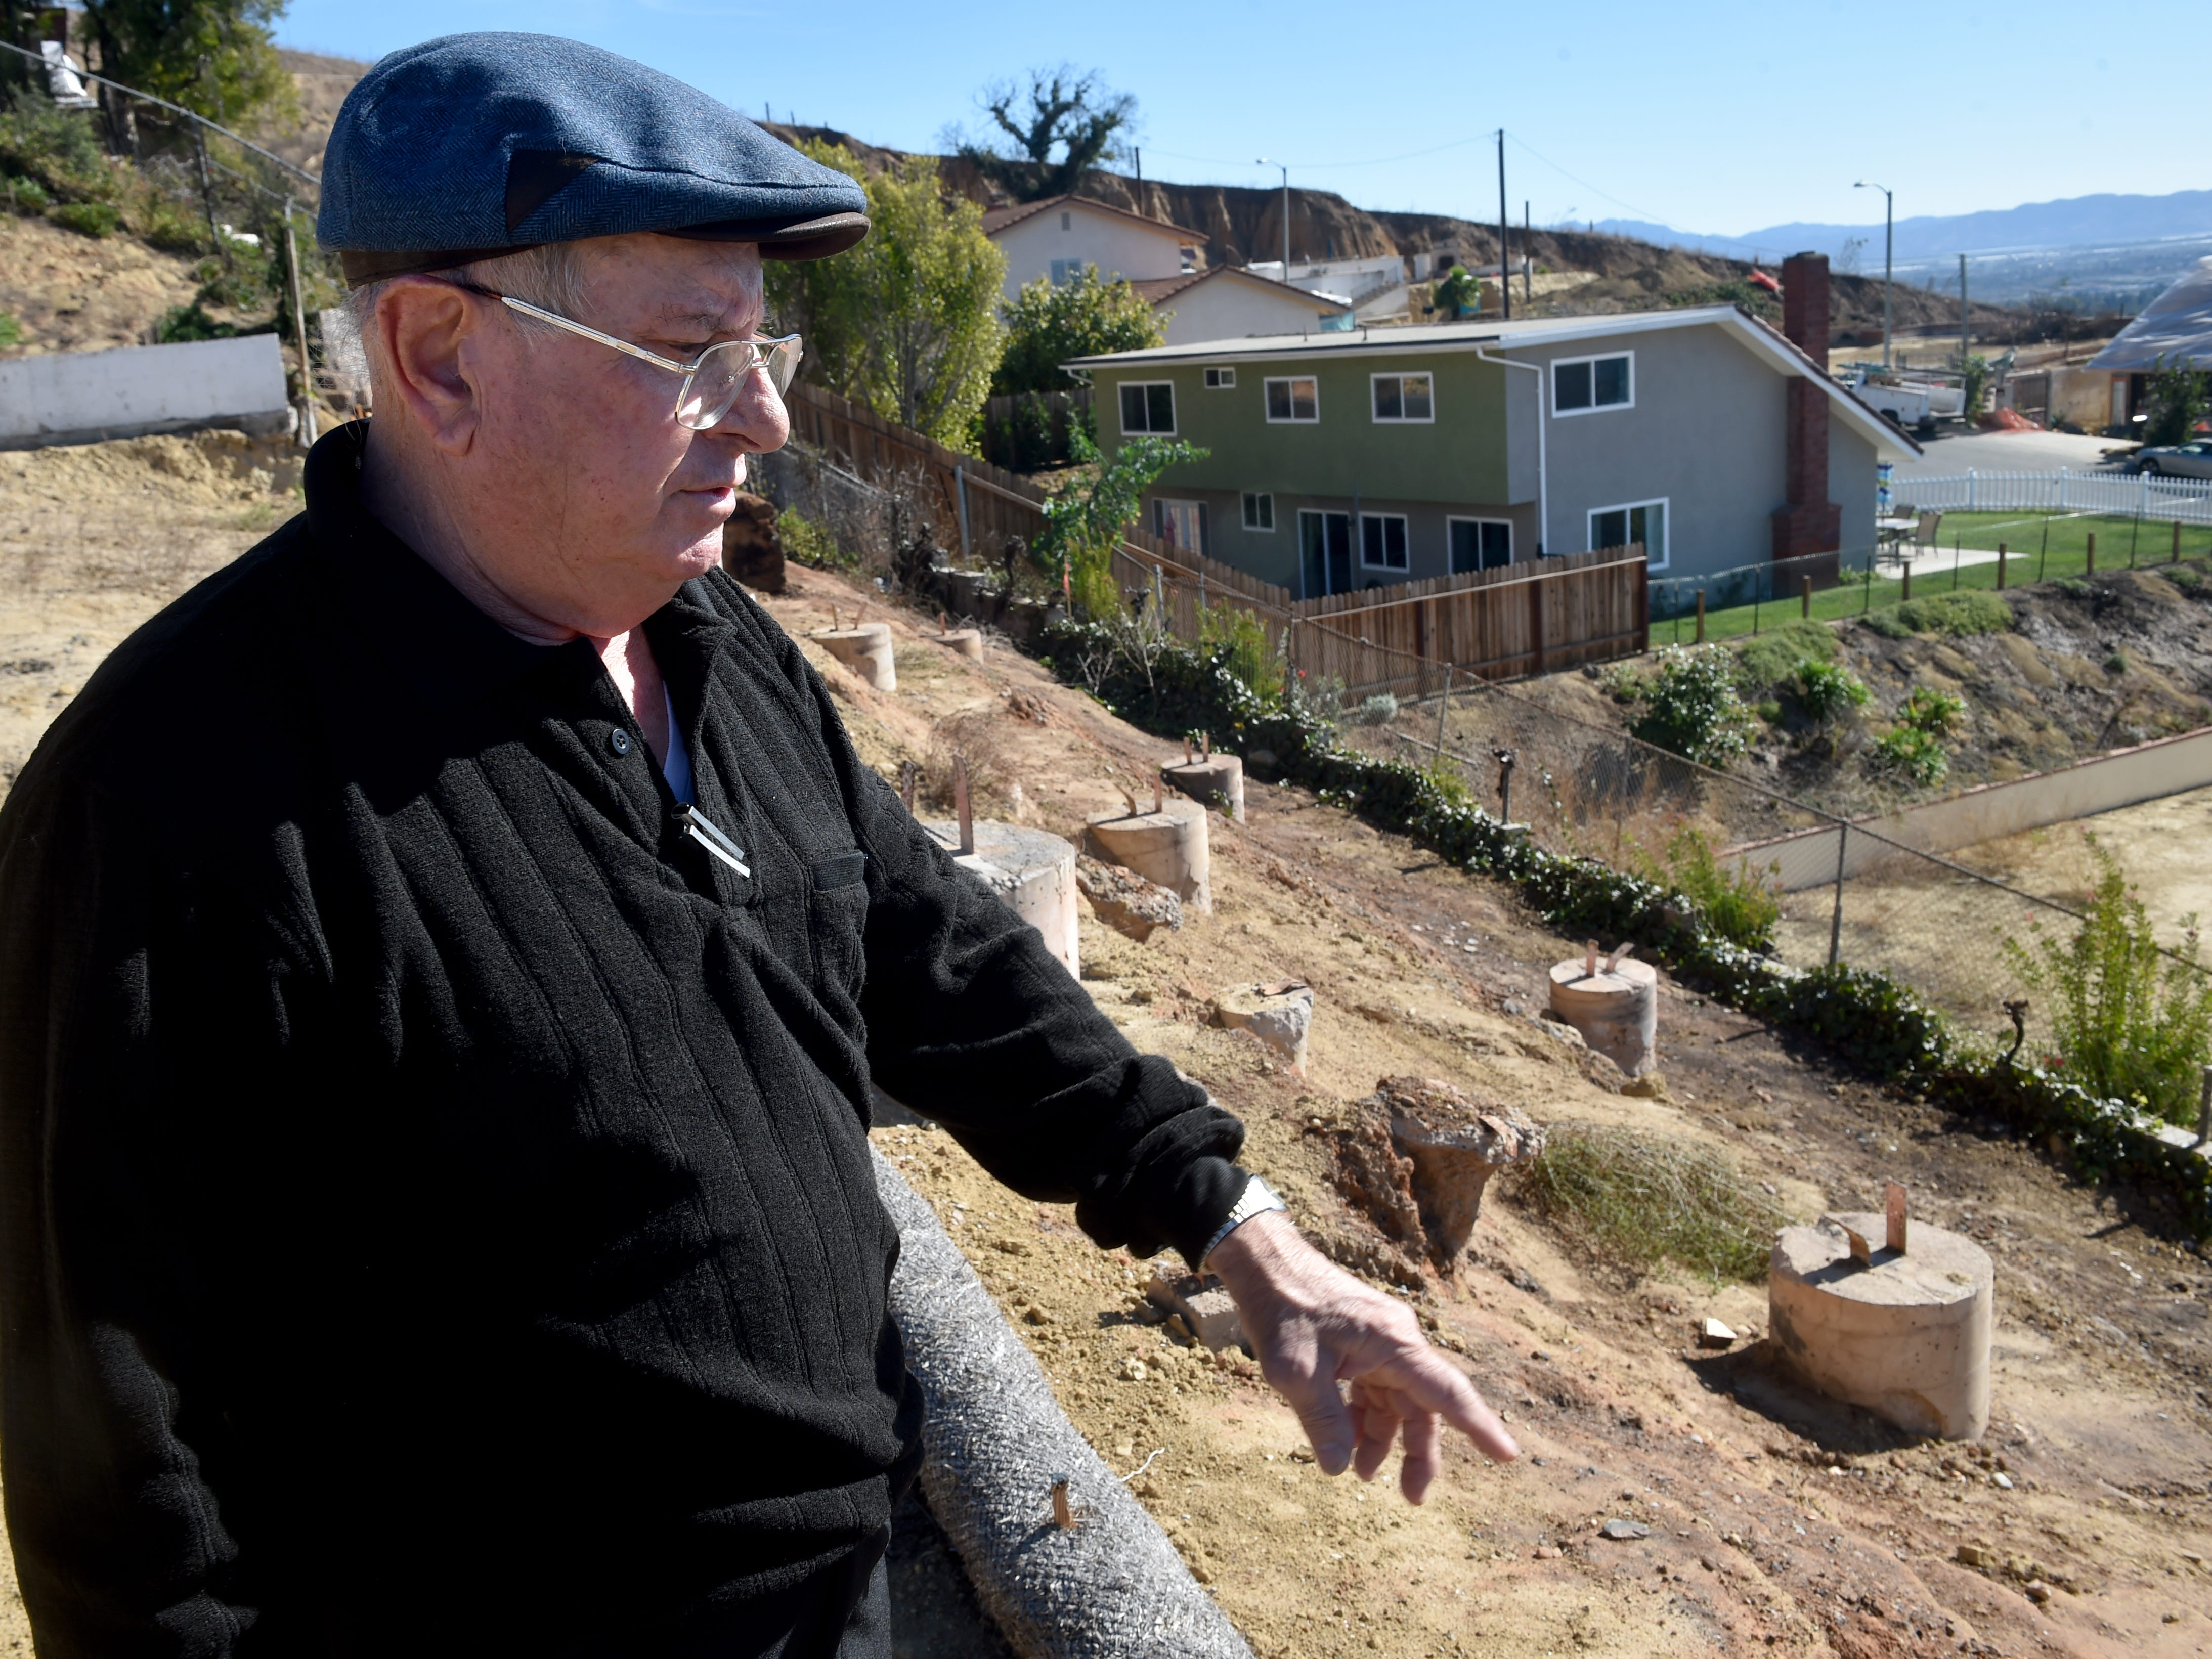 Carl Zaid, of Ventura, visits the lot on Crestone Court where his family's home burned in the Thomas Fire. Despite a shortage of contractors and other obstacles, Zaid and his family plan to rebuild.